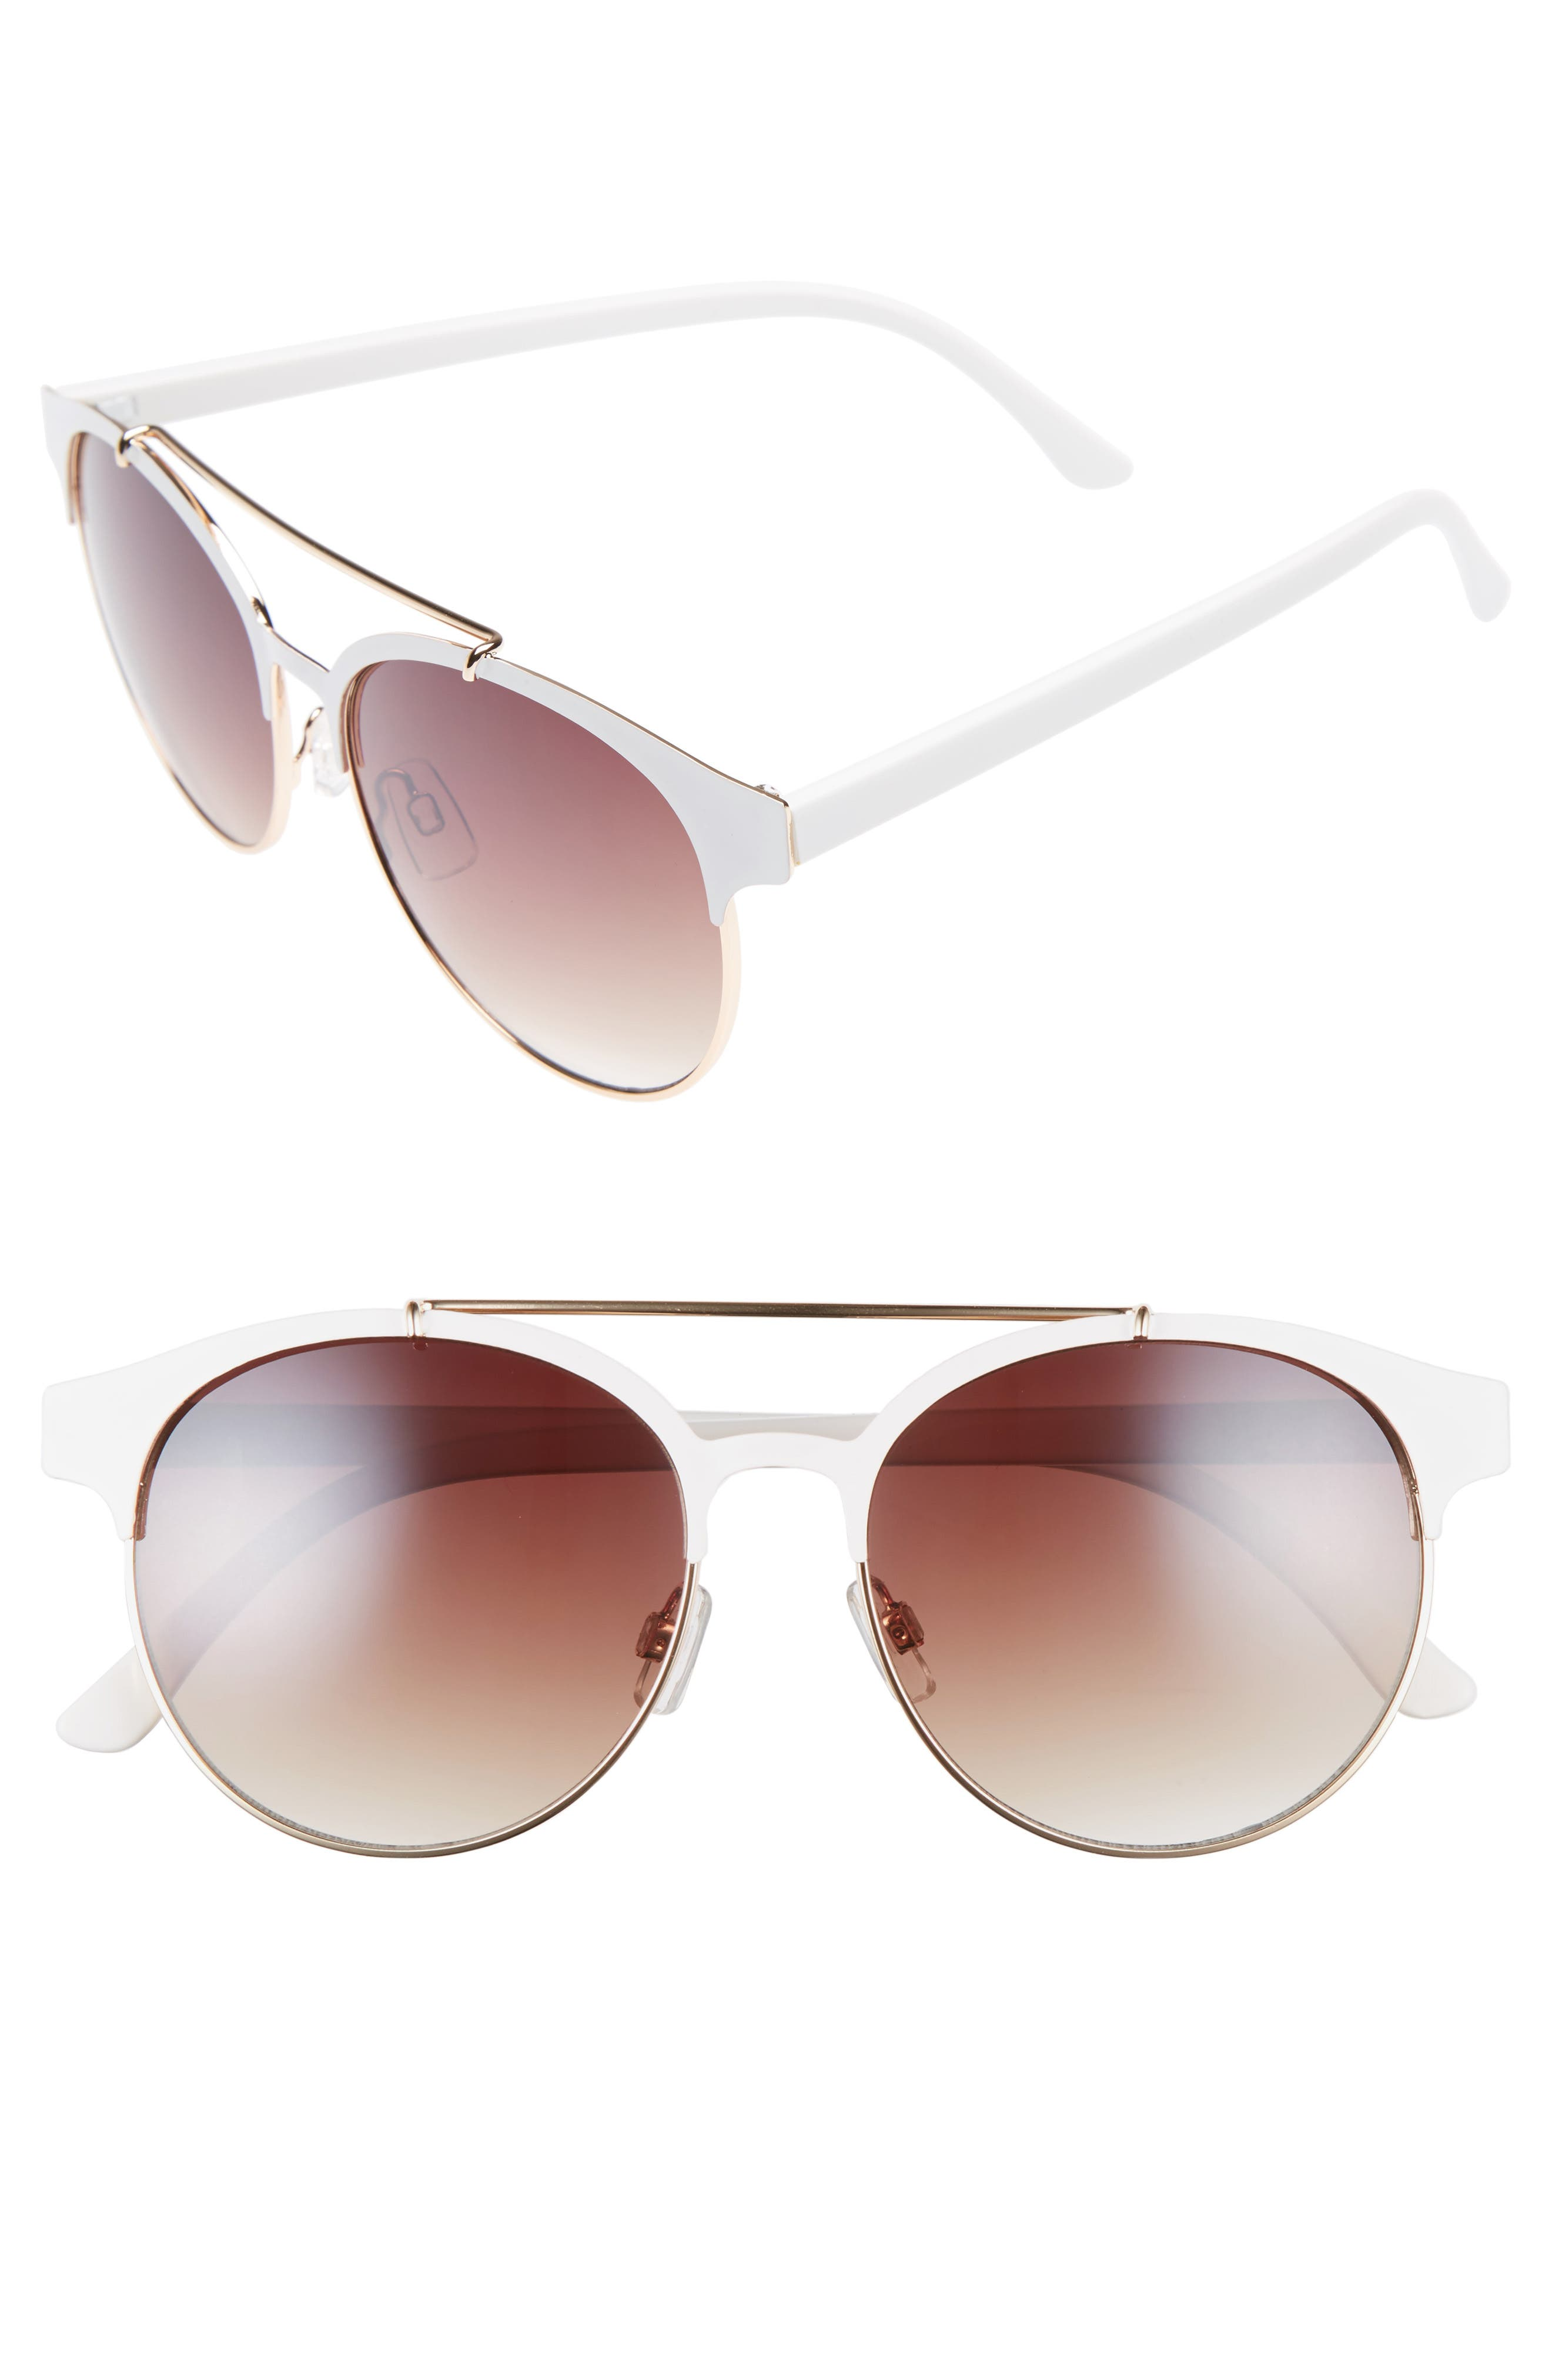 Alternate Image 1 Selected - BP. 55mm Round Sunglasses